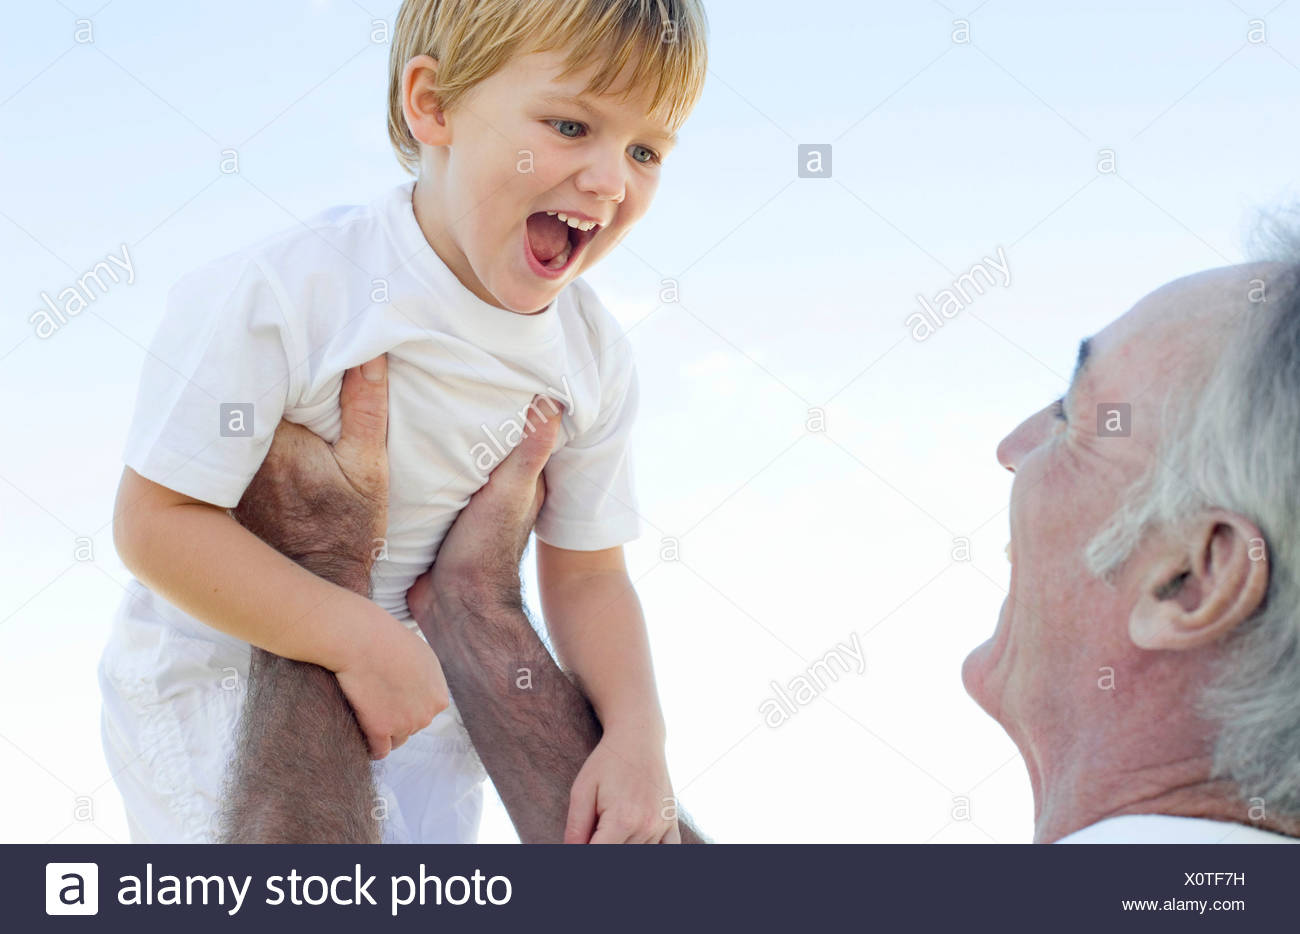 Grandfather lifting his grandson - Stock Image